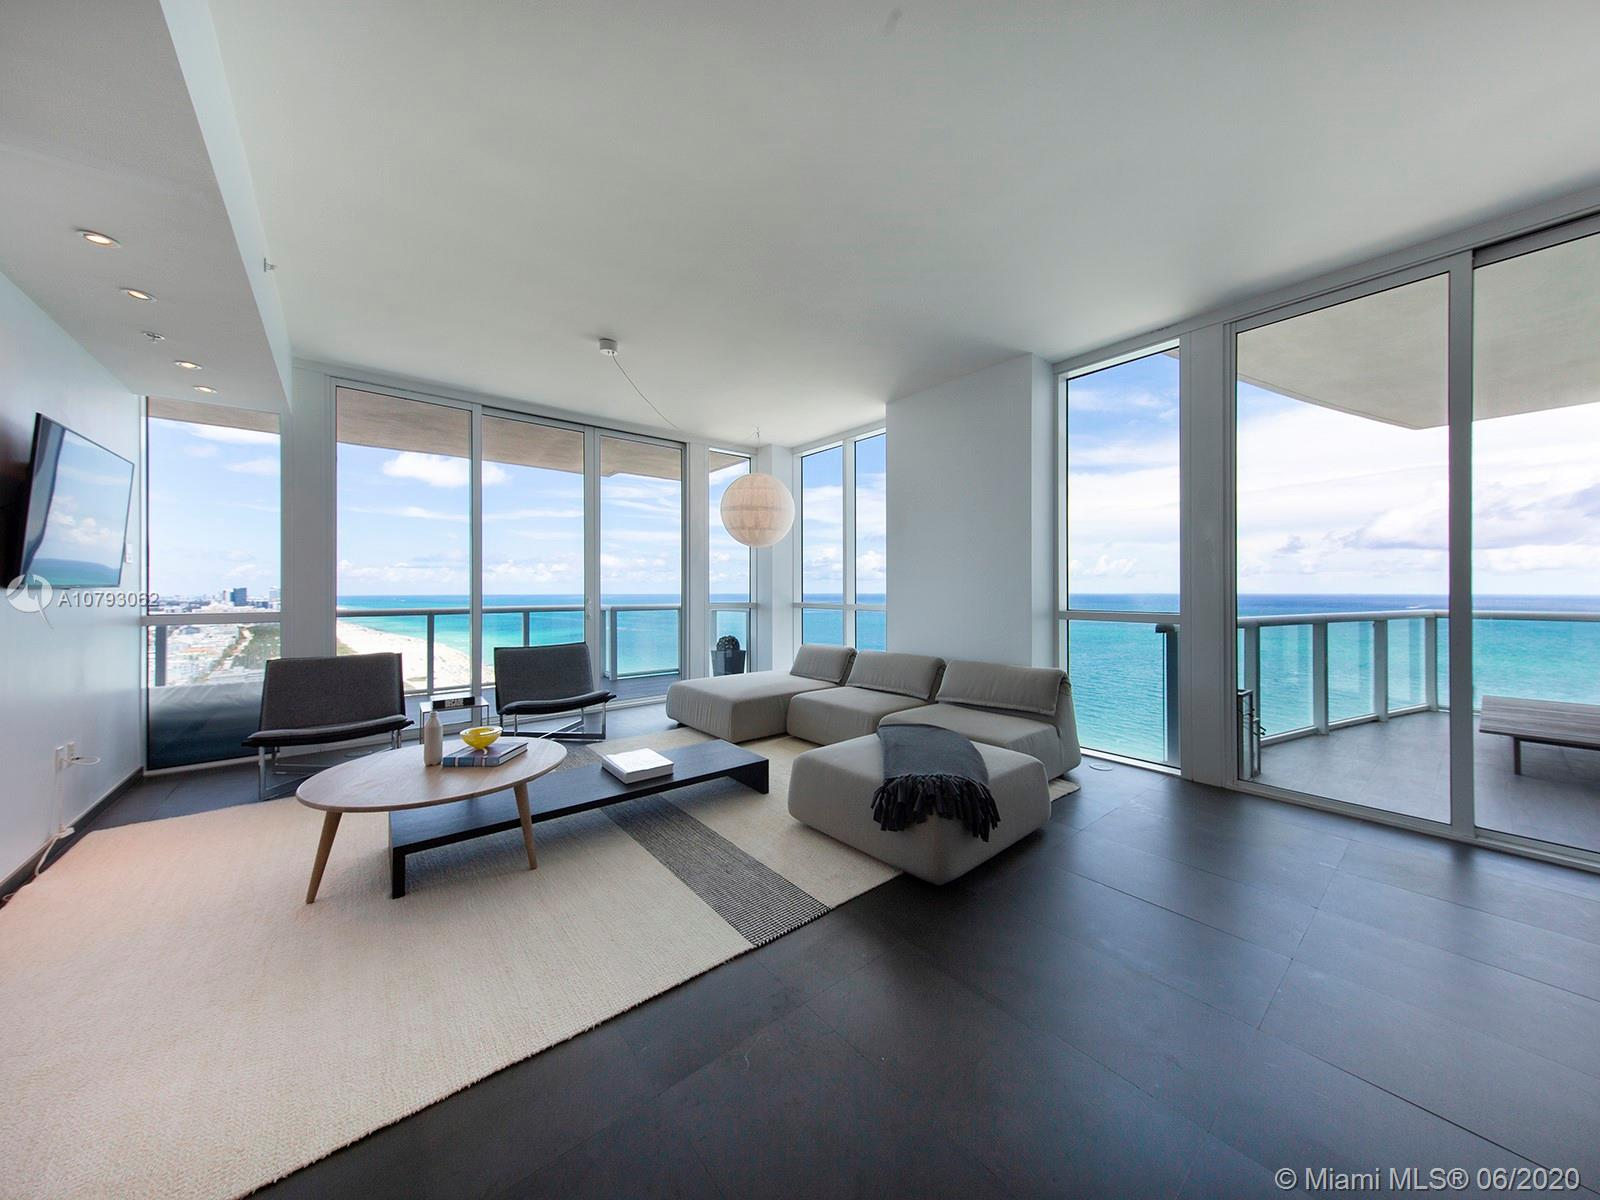 image #1 of property, Continuum On South Beach, Unit 3401